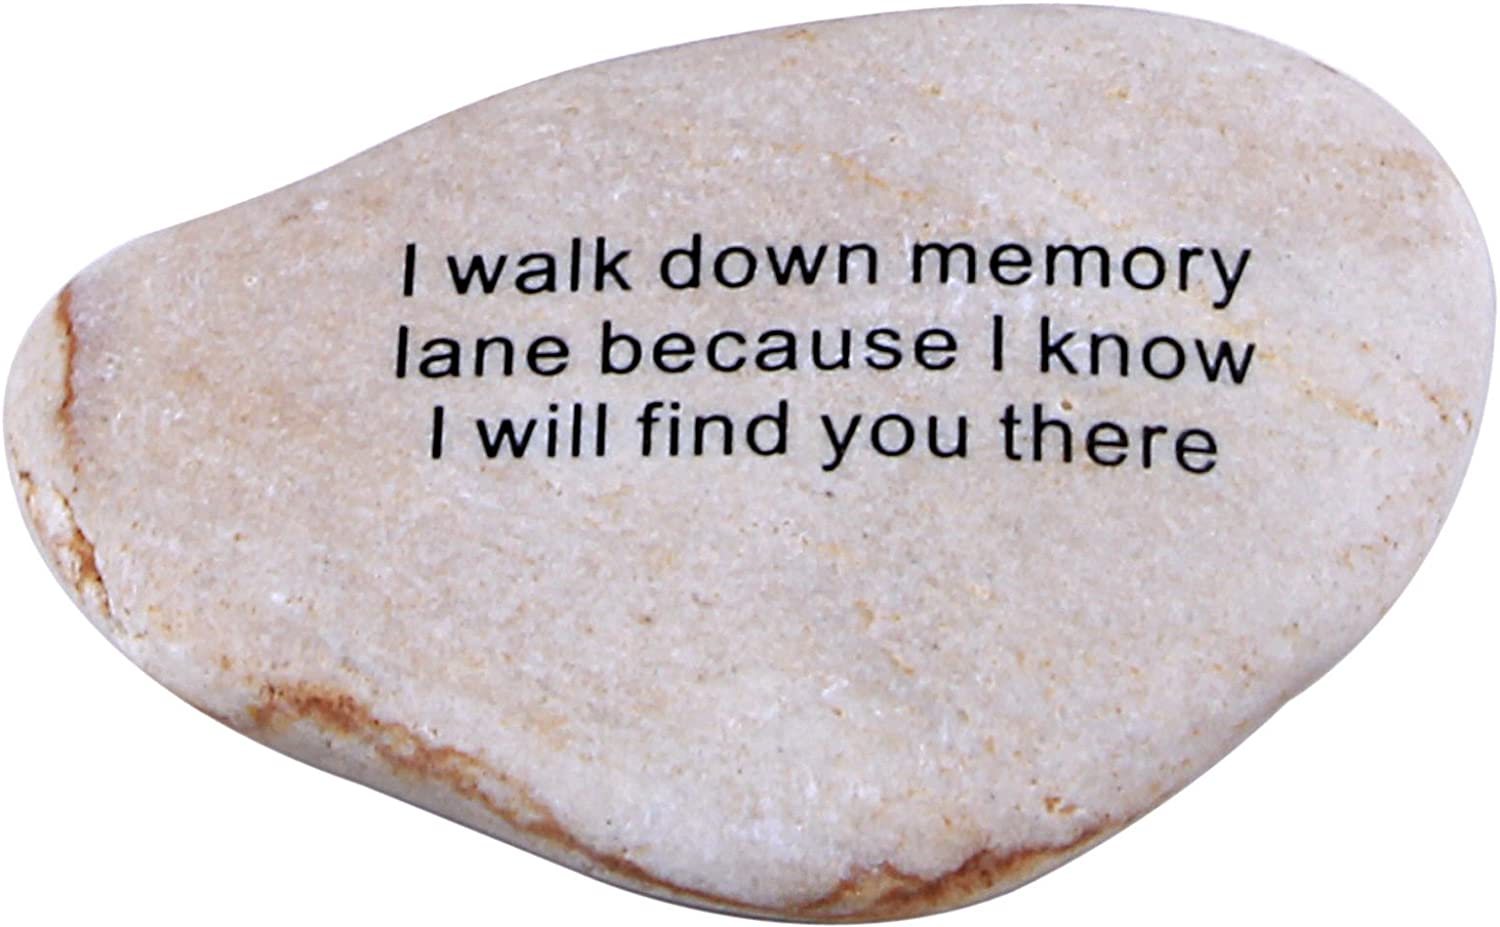 Holy Land Market - I Walk Down Memory Extra Large Engraved Natural Stones from The Holy Land : 4-5 Inches